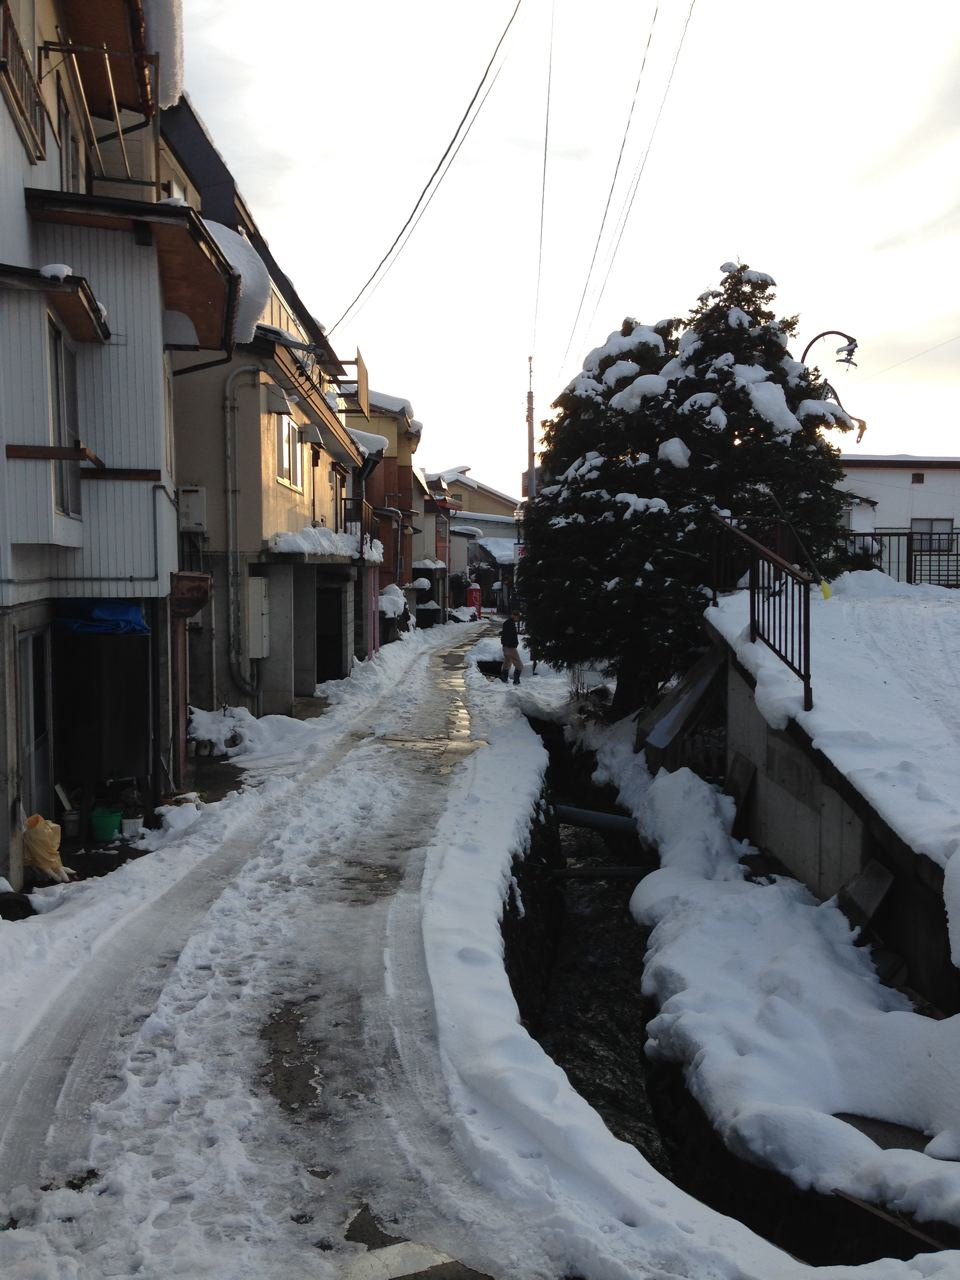 Sun set, small street, snow shovel Nozawa Style